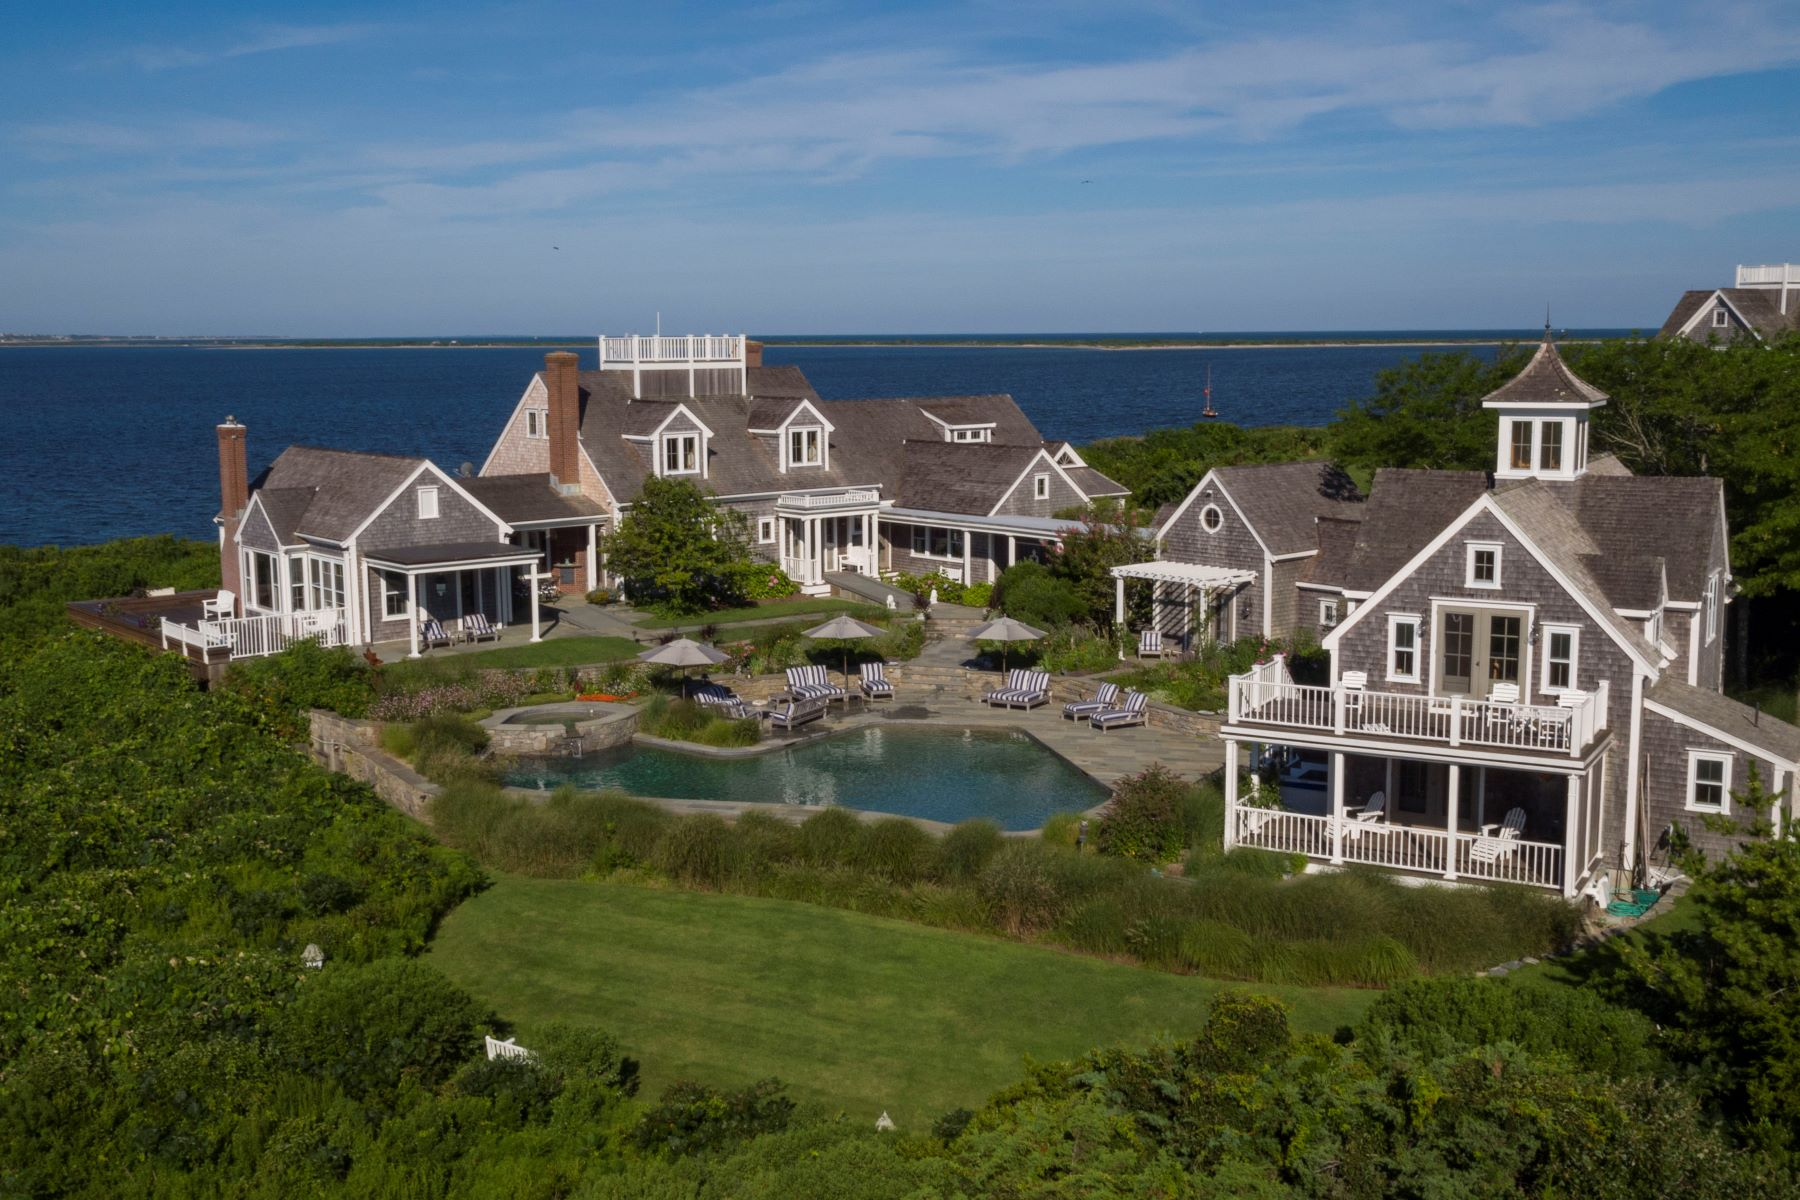 Vivienda unifamiliar por un Venta en Entirely Unique Waterfront Estate 72 Pocomo Road 78 Pocomo Road, Nantucket, Massachusetts, 02554 Estados Unidos